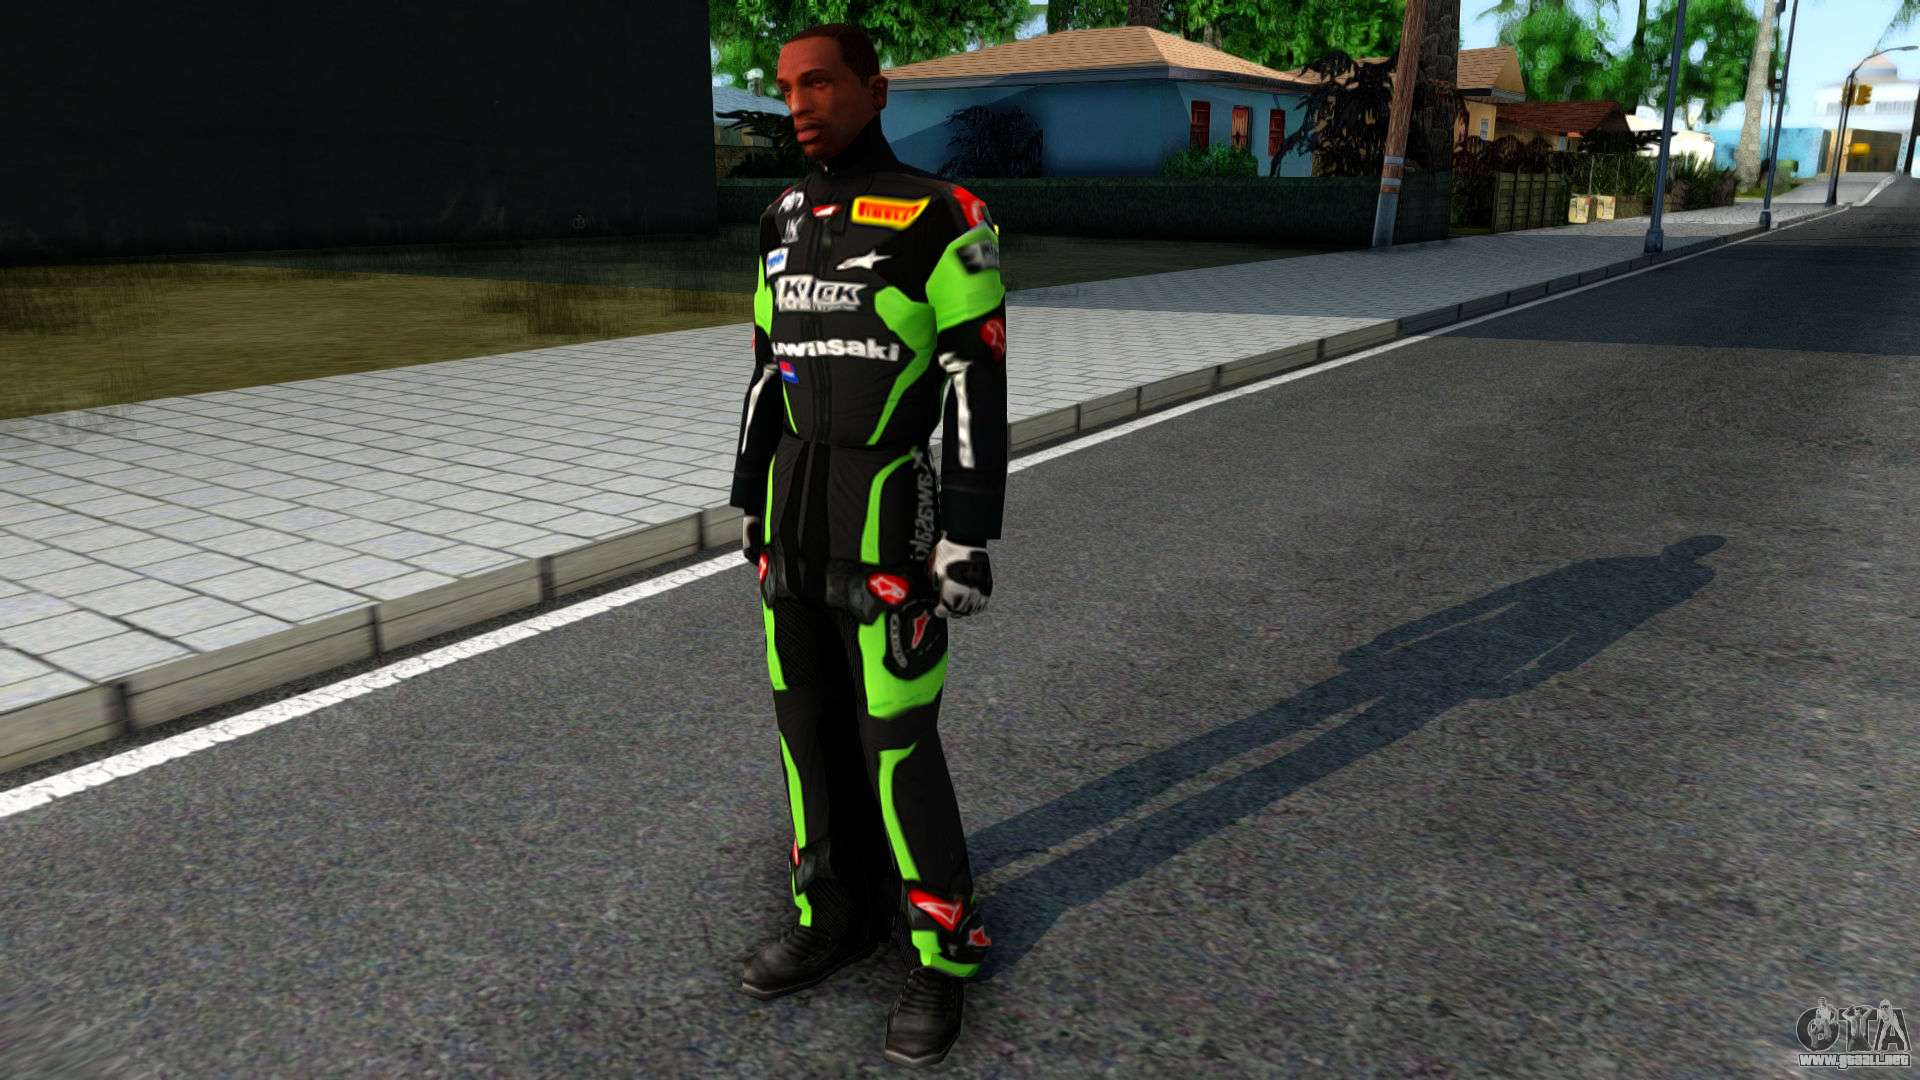 Gta online racing outfit for women